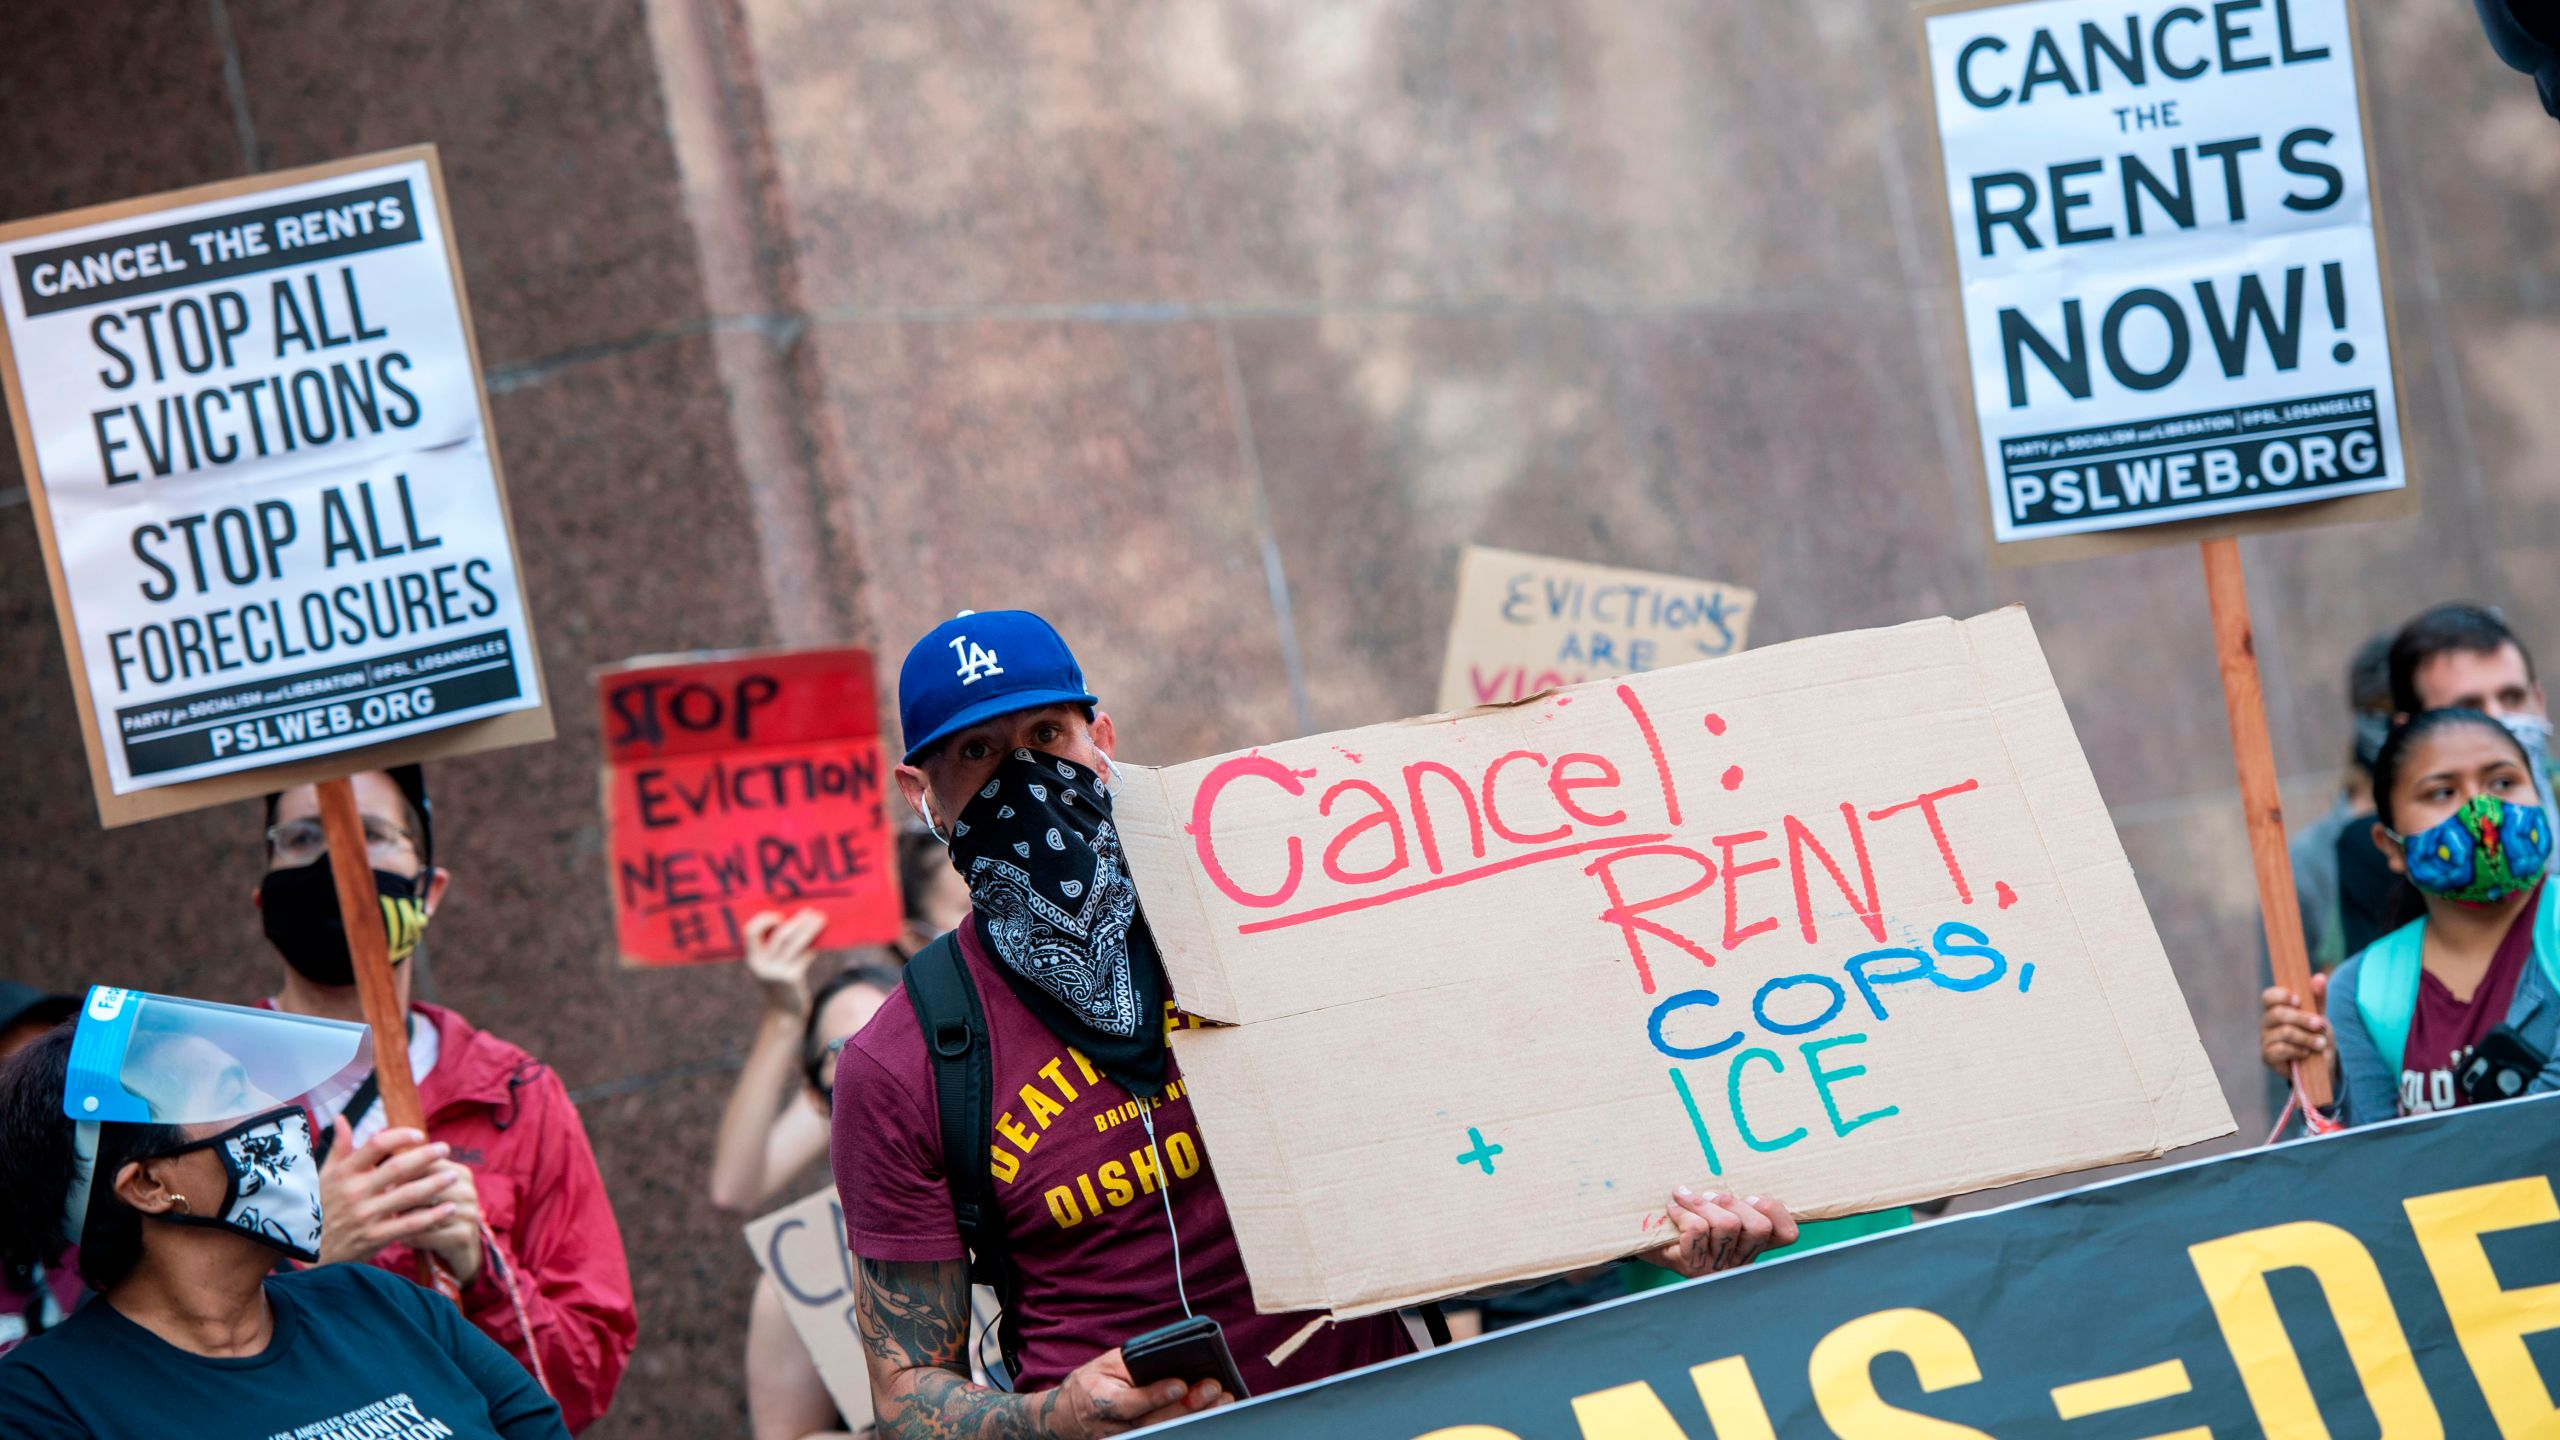 Renters and housing advocates attend a protest to cancel rent and avoid evictions in front of the court house amid Coronavirus pandemic on Aug. 21, 2020, in Los Angeles. (VALERIE MACON/AFP via Getty Images)